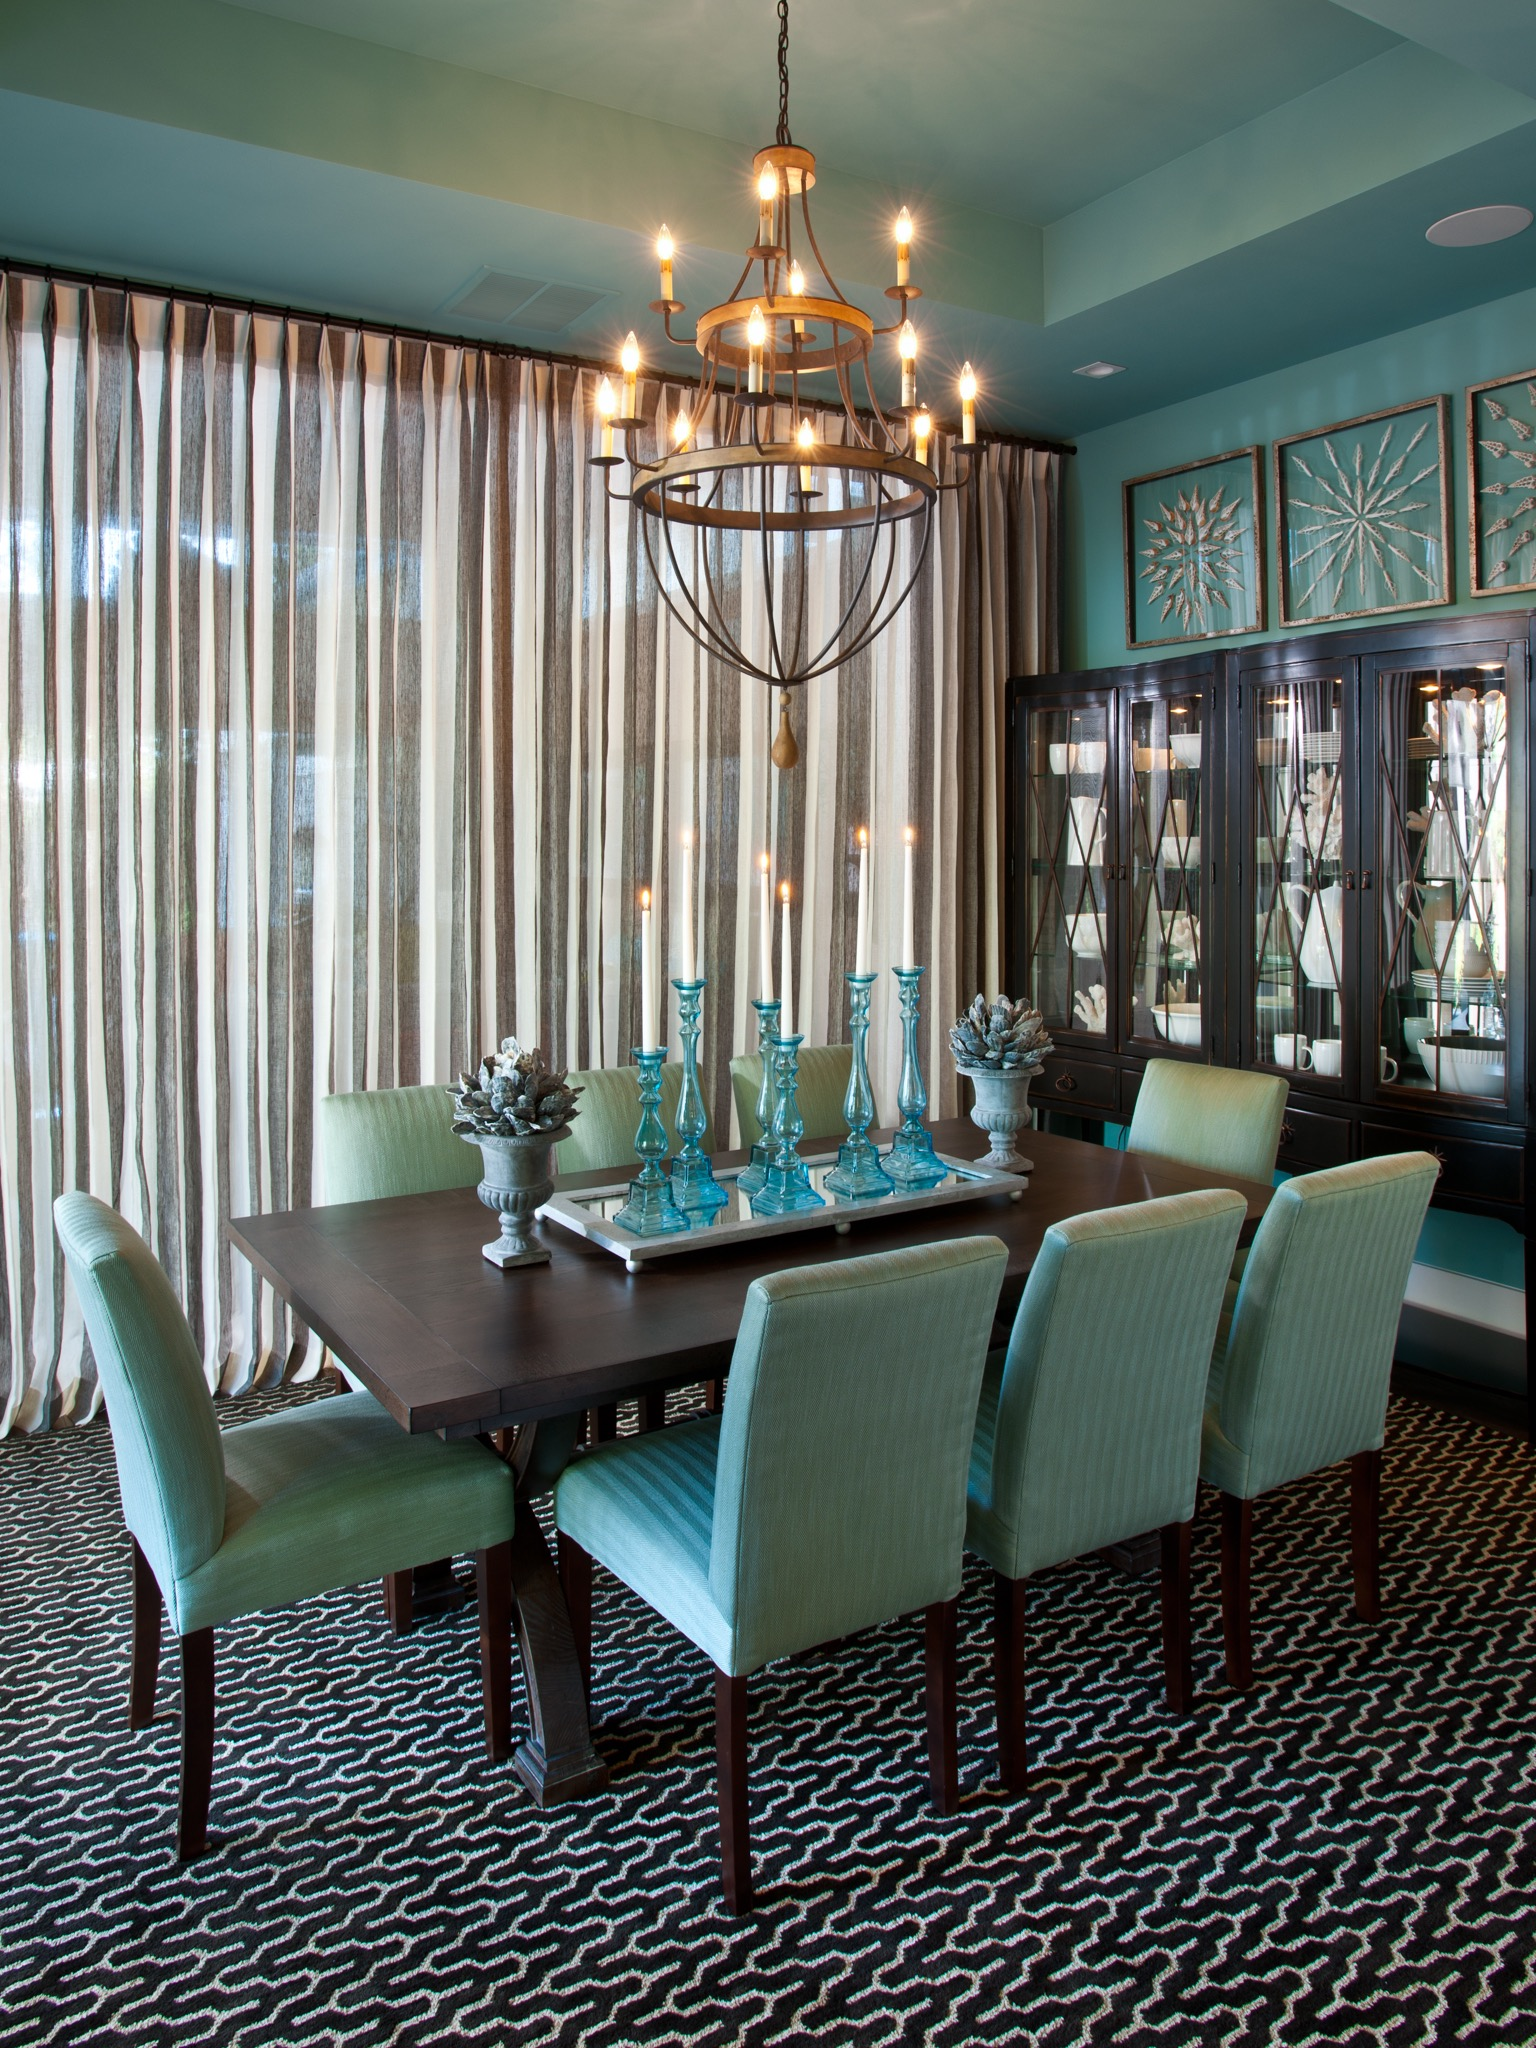 Modern Formal Apartment Dining Room (Image 24 of 30)